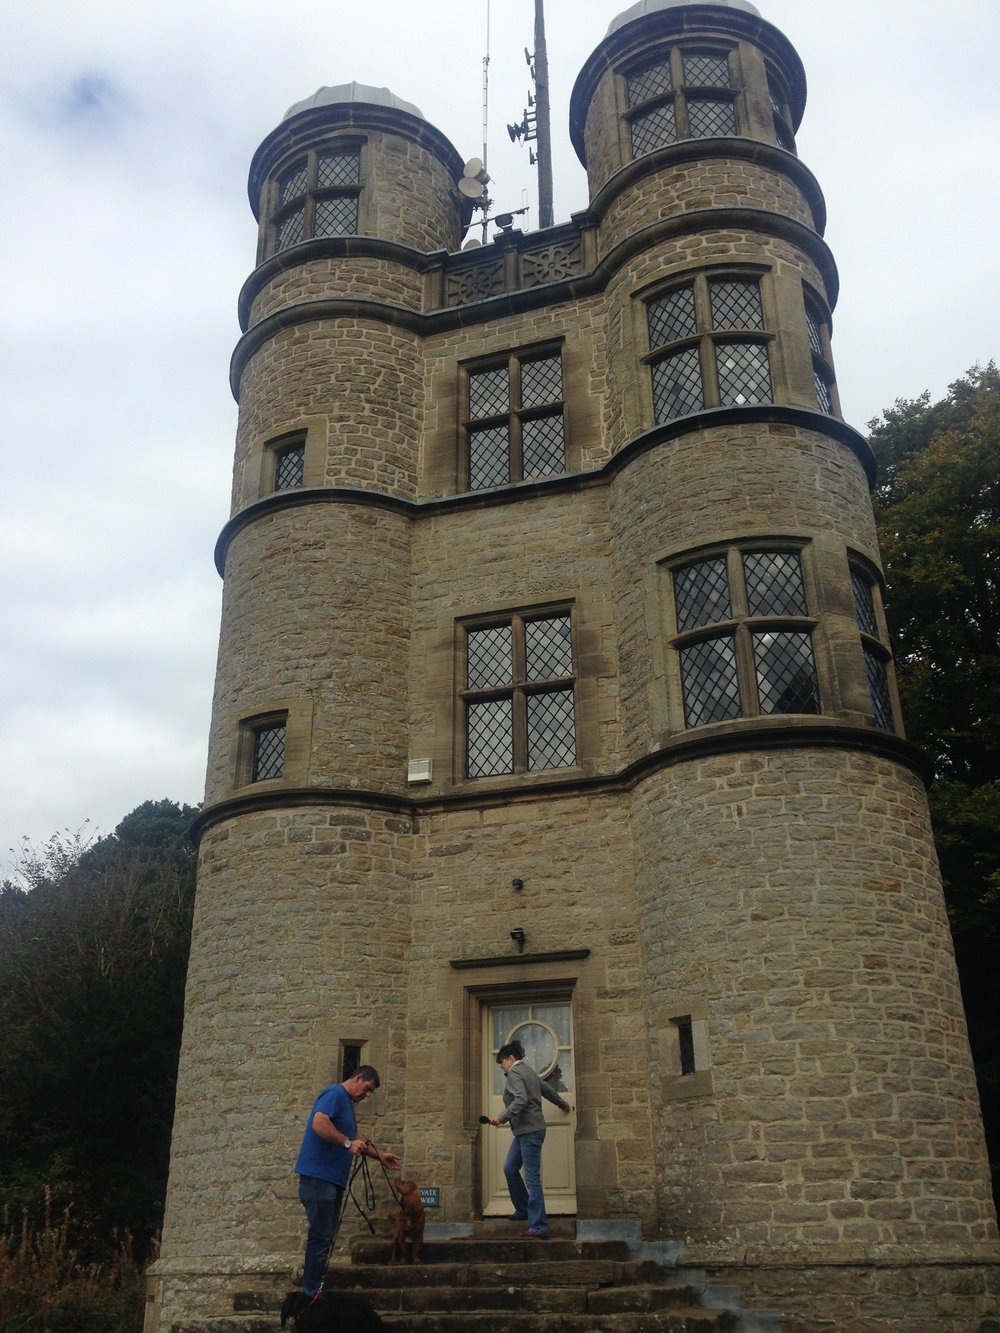 Timeout: these people live in this Elizabethan hunting tower. Real life. Ok, carry on.